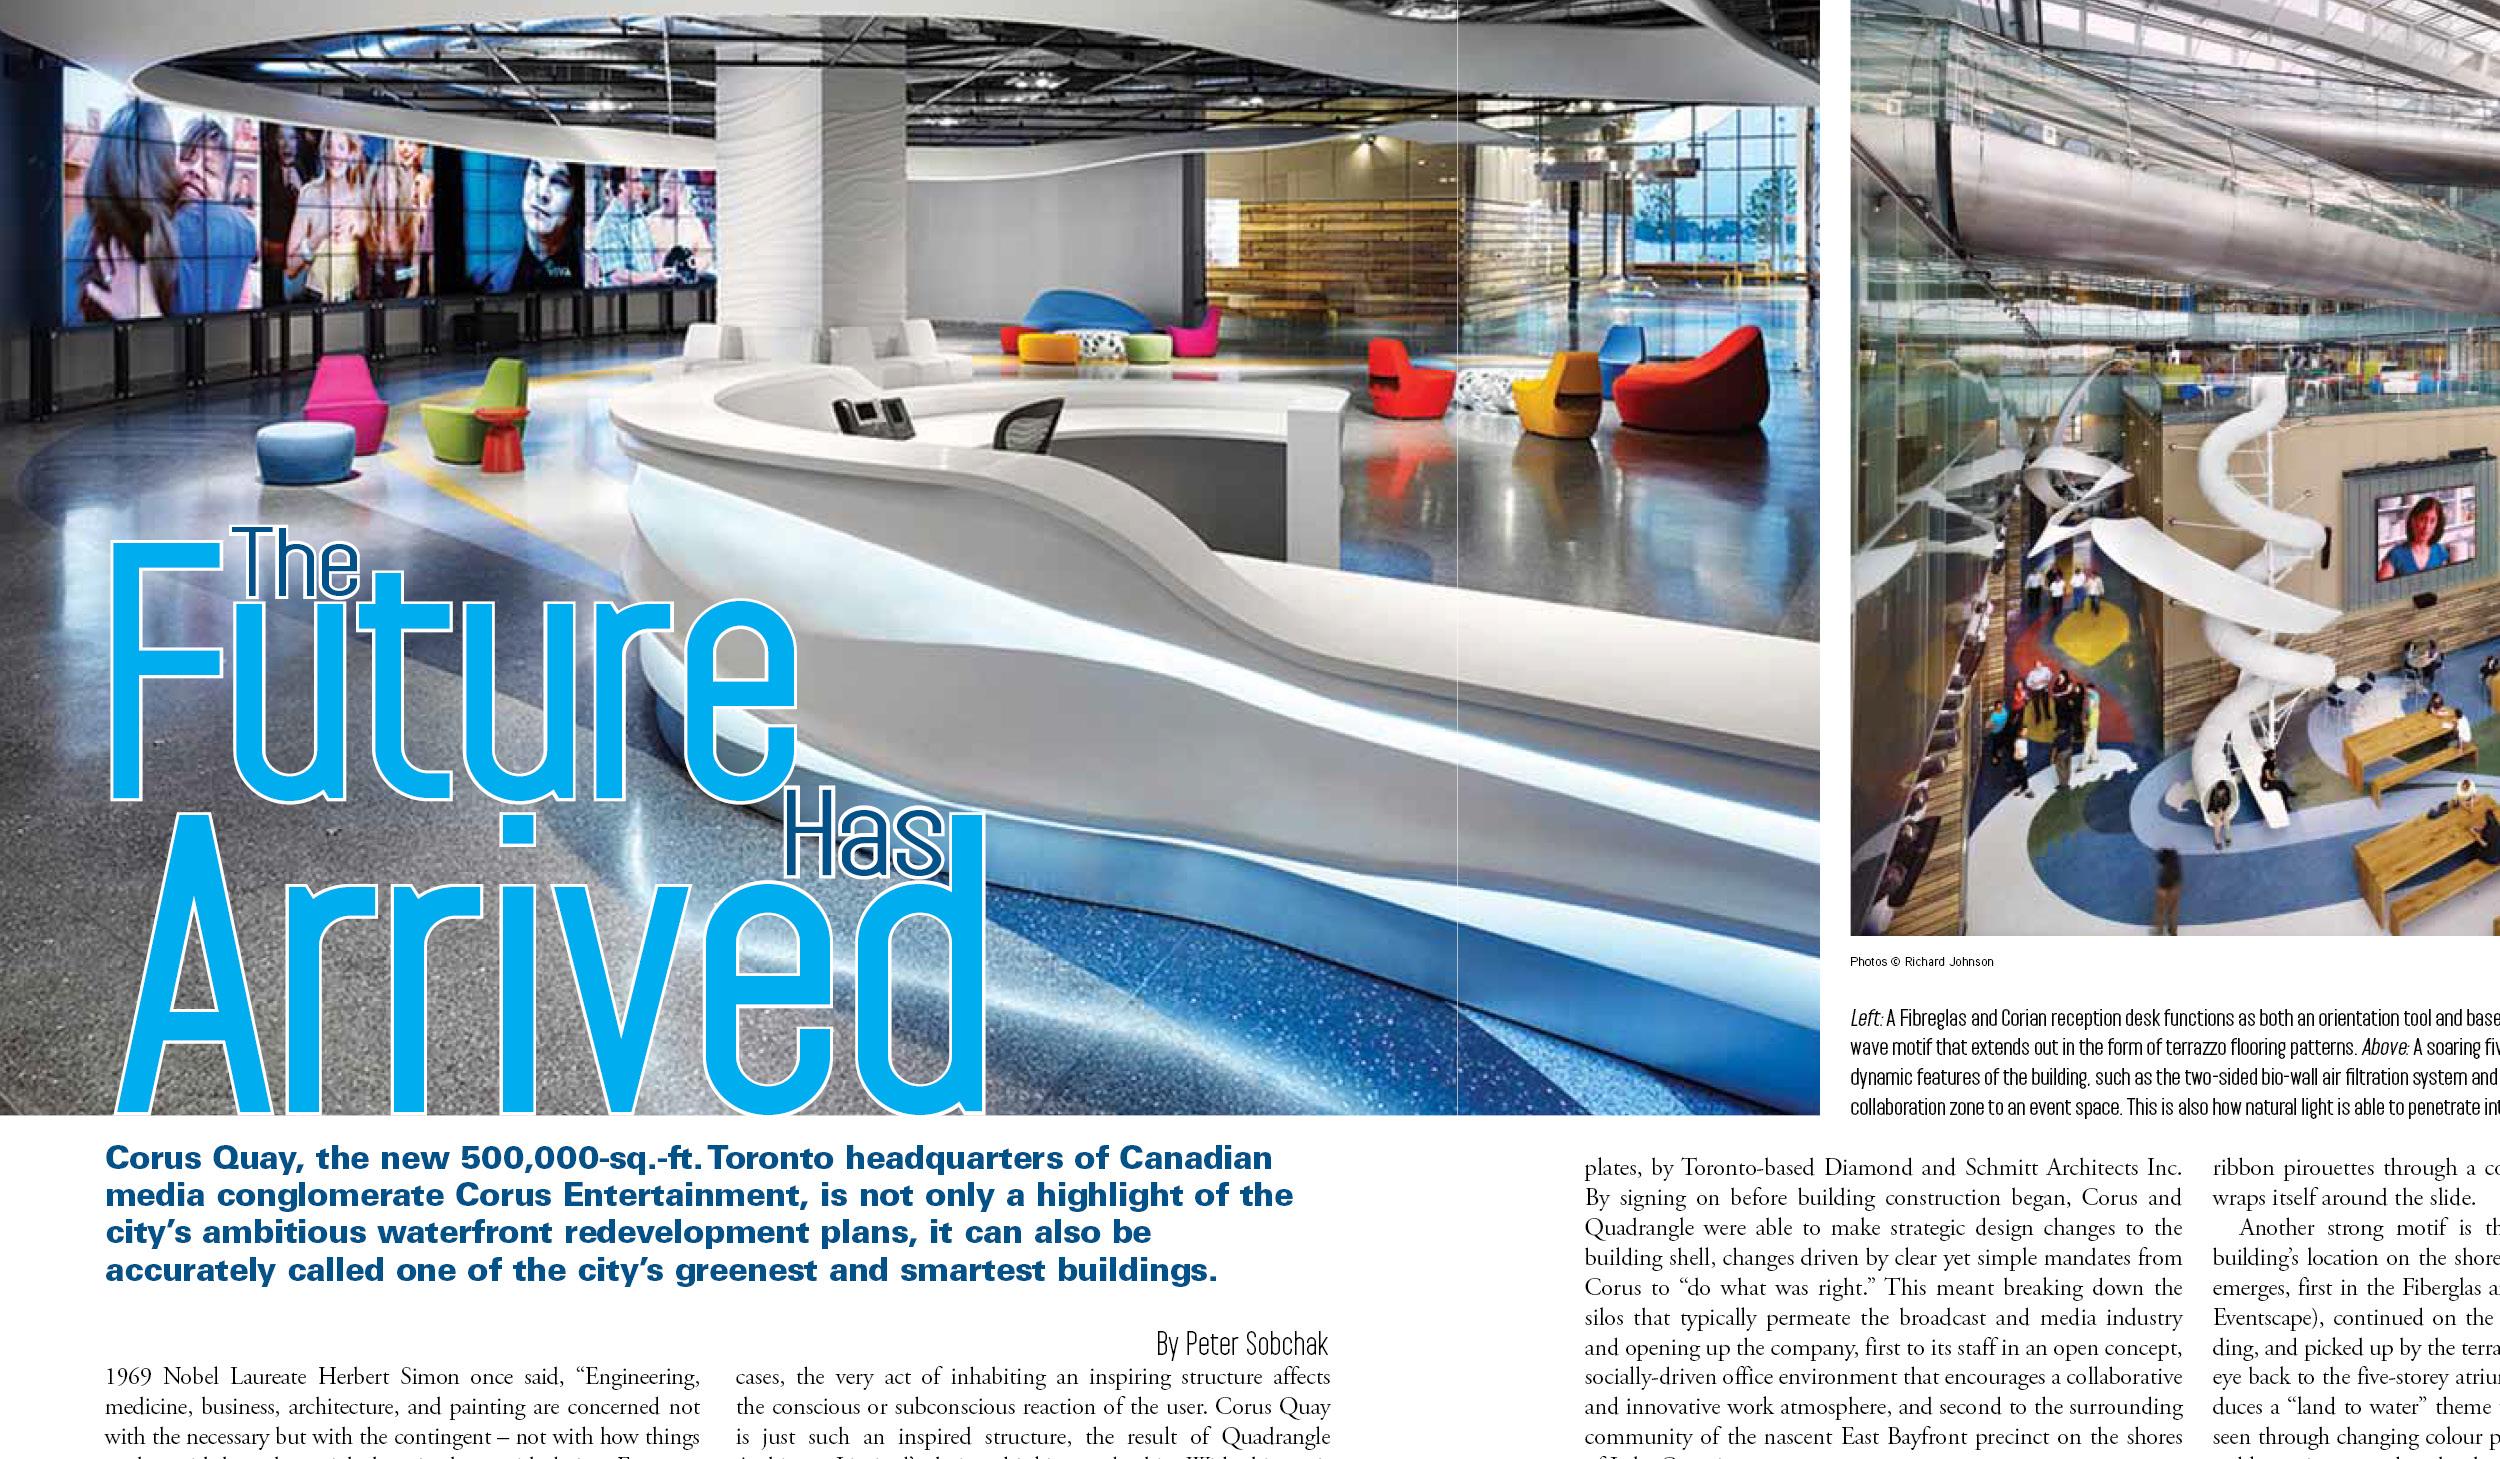 an article about Corus Entertainment's new office taken from Building Magazine